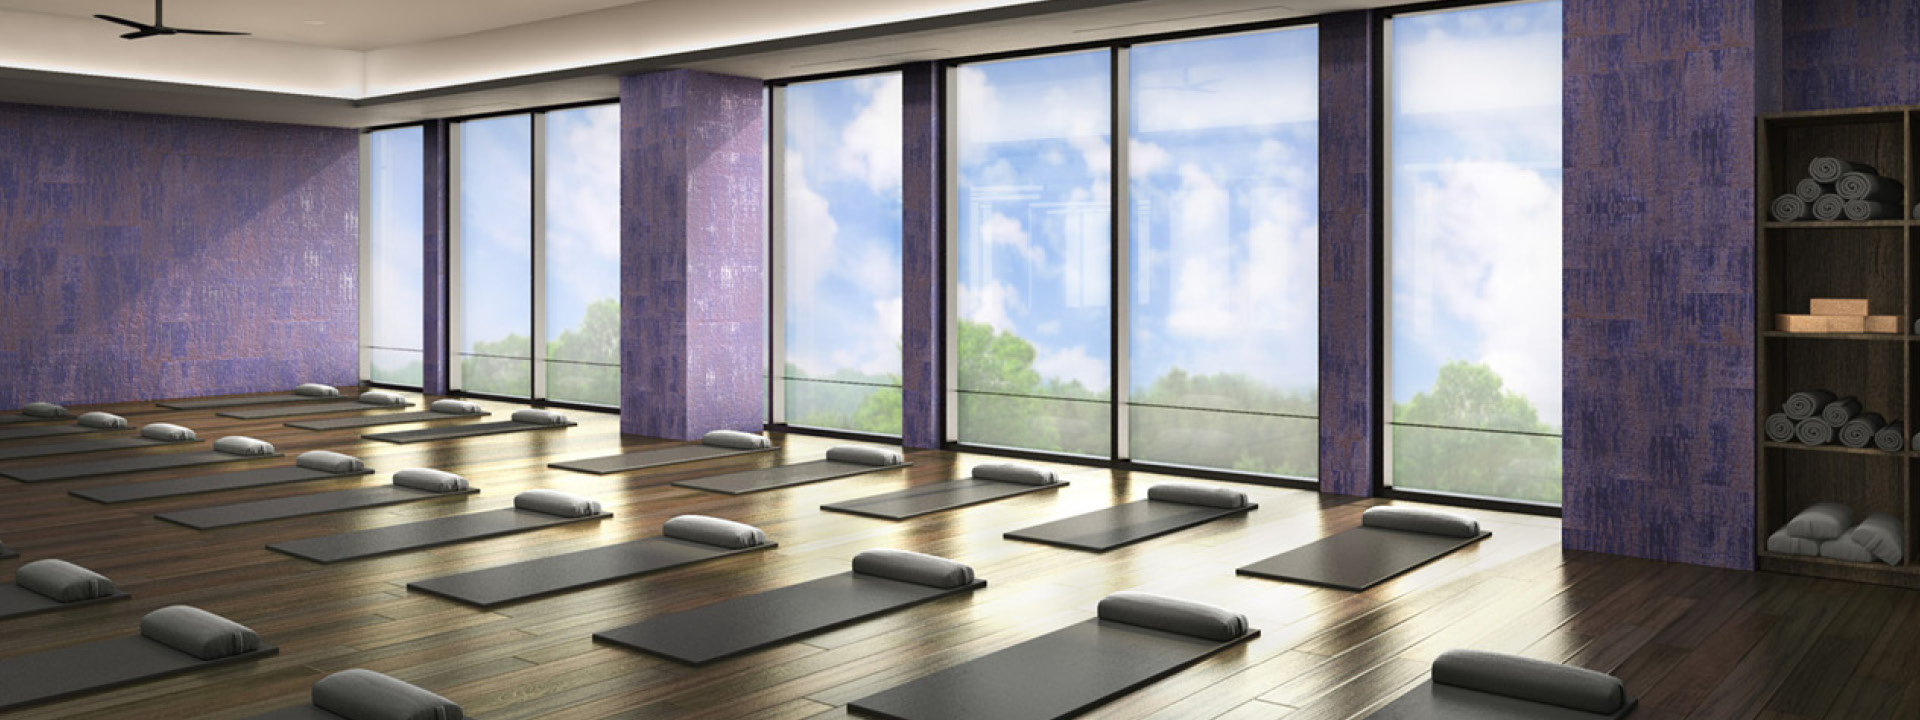 Gyms in South Boston with Pilates and Yoga Classes - Equinox